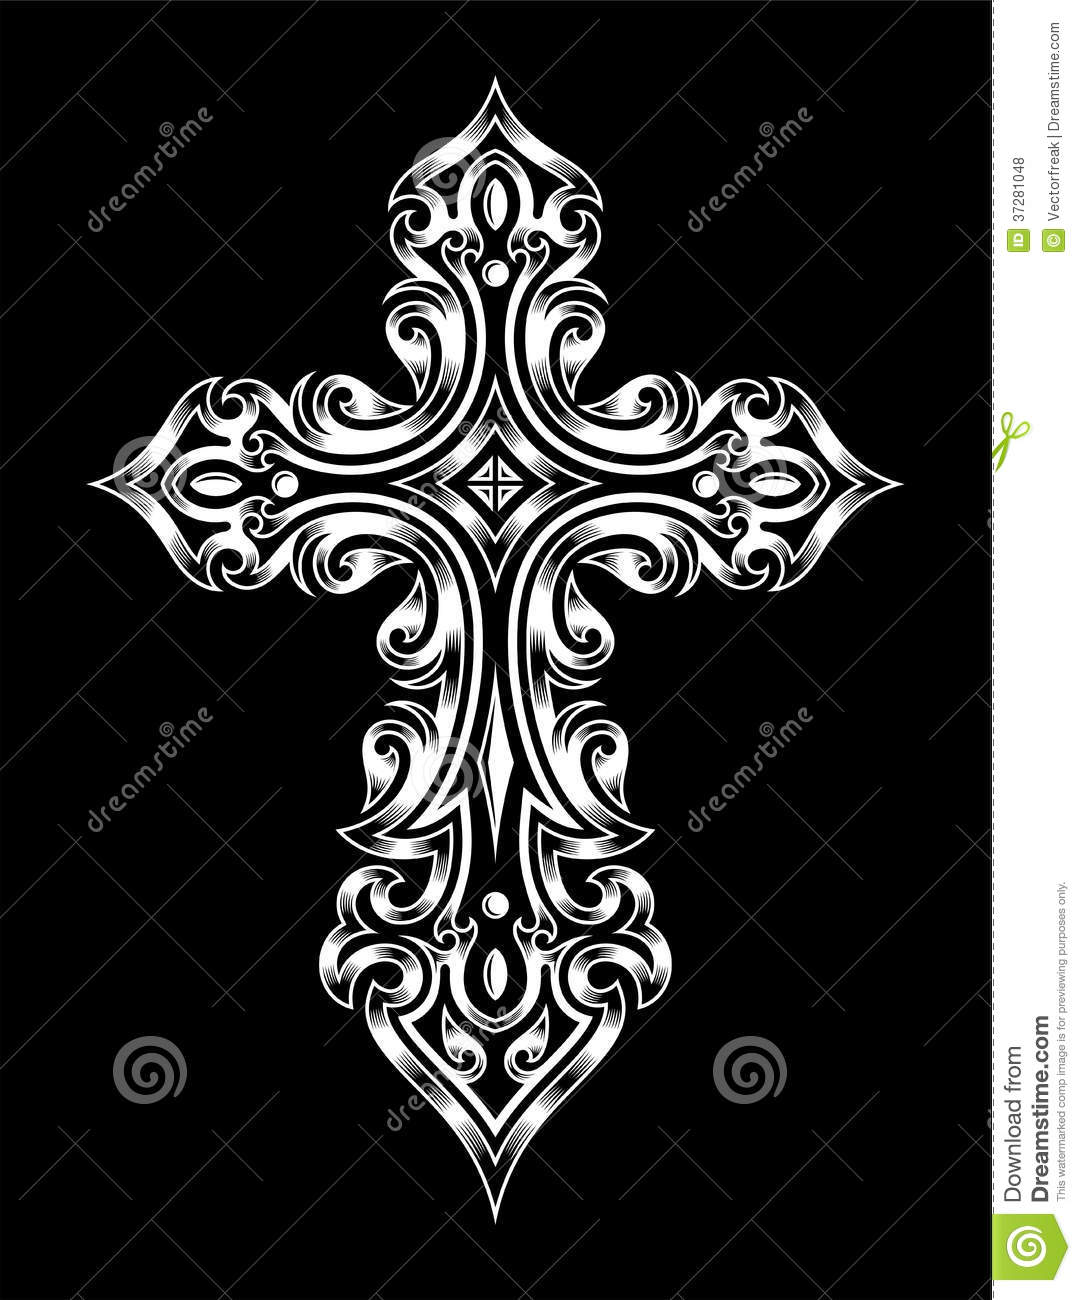 Gothic cross royalty free stock photos image 37281048 for Gothic design elements